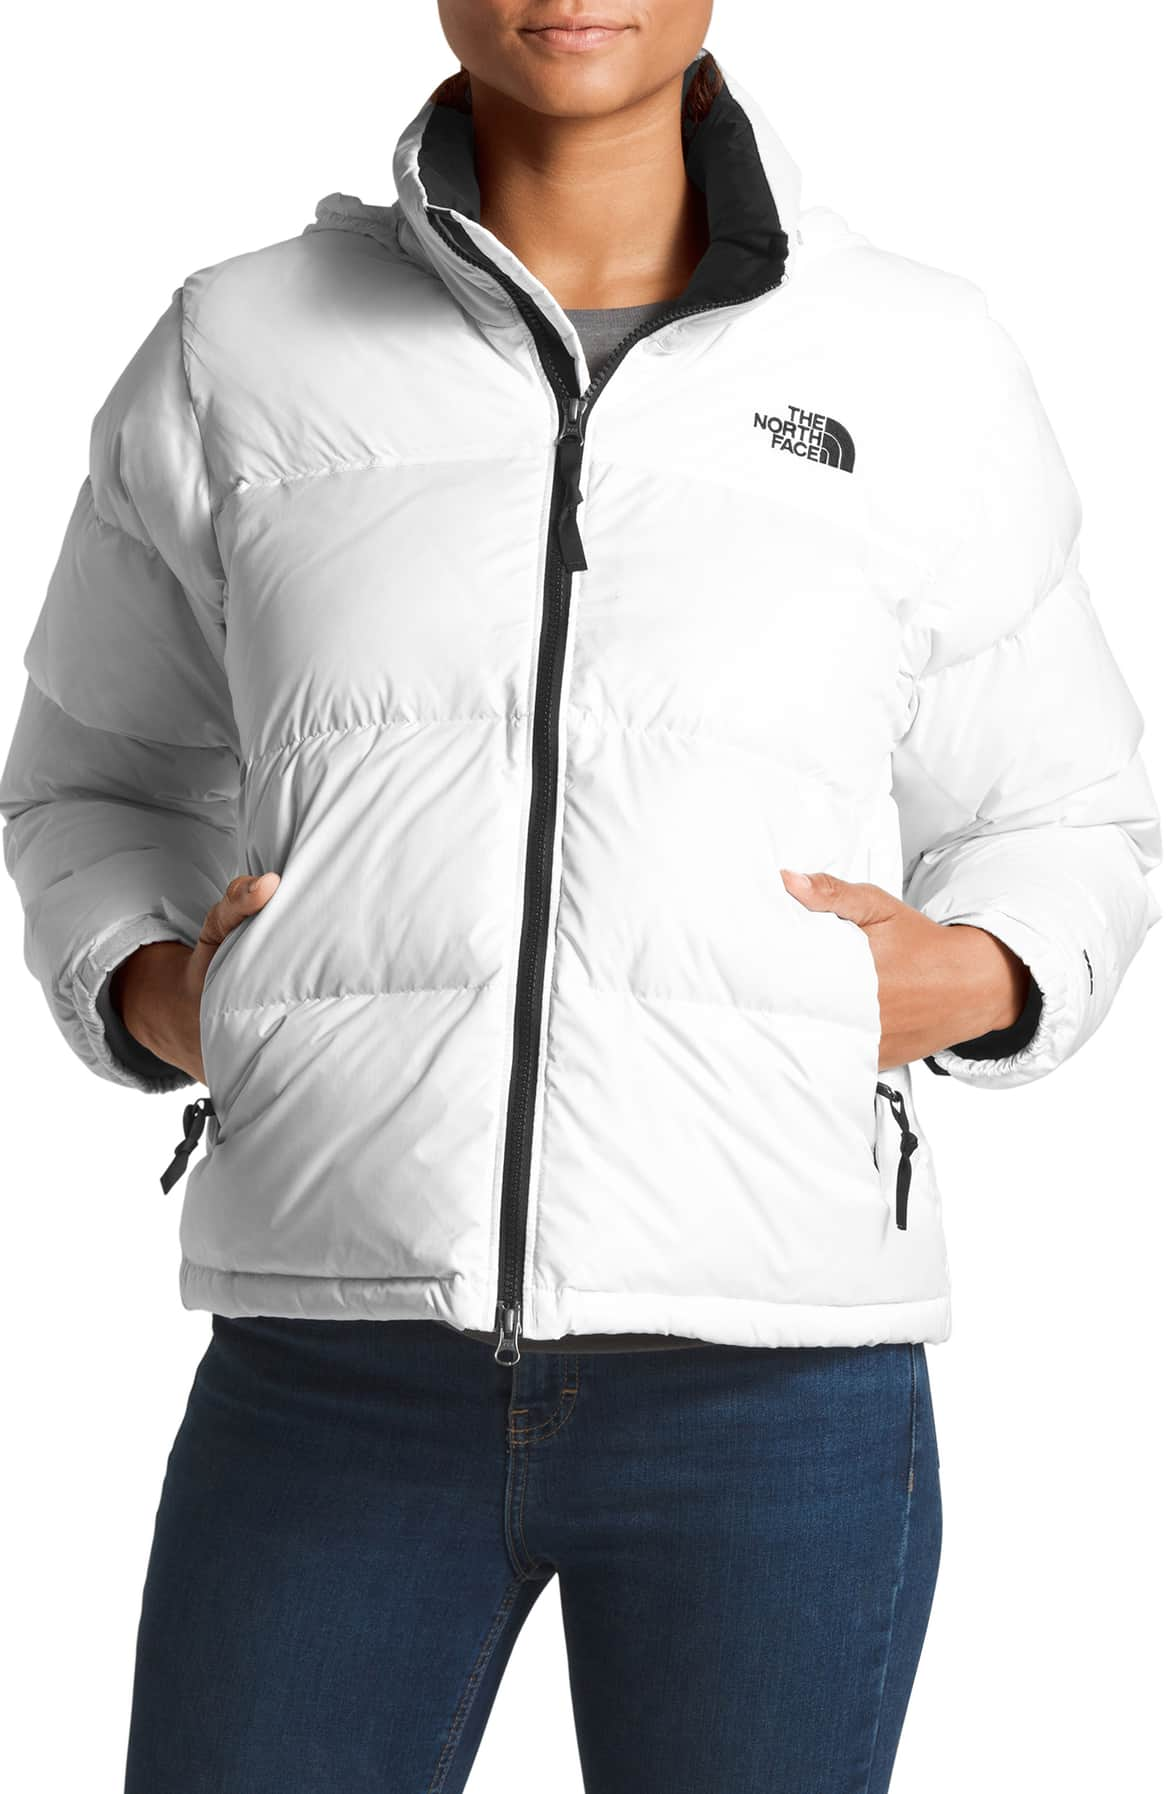 <p>This retro North Face jacket is based on a baffle-quilted, down-insulated design from 1996 and offers unmatched warmth in cold weather. Cute beyond the mountain for sure.{&nbsp;} 249.00 (Image: Nordstrom)</p><p></p>